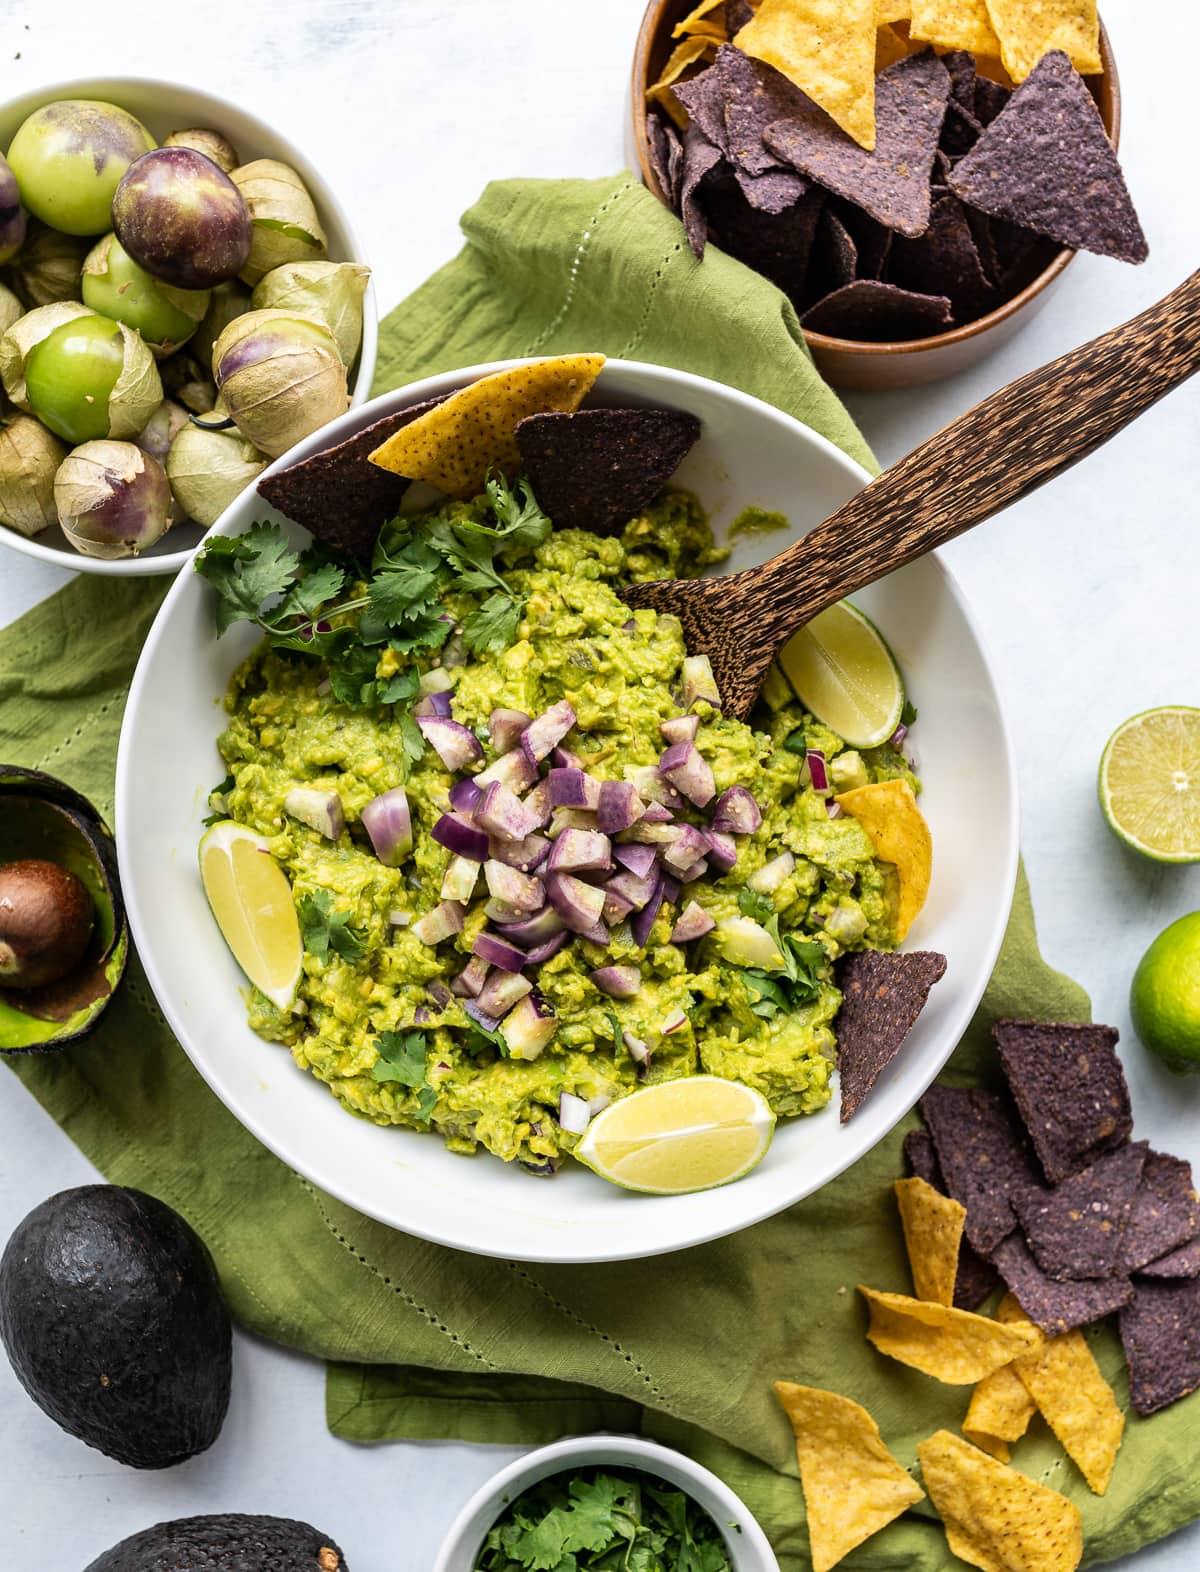 white bowl of tomatillo guacamole with green avocados and purple tomatillos lime slices blue and yellow chips